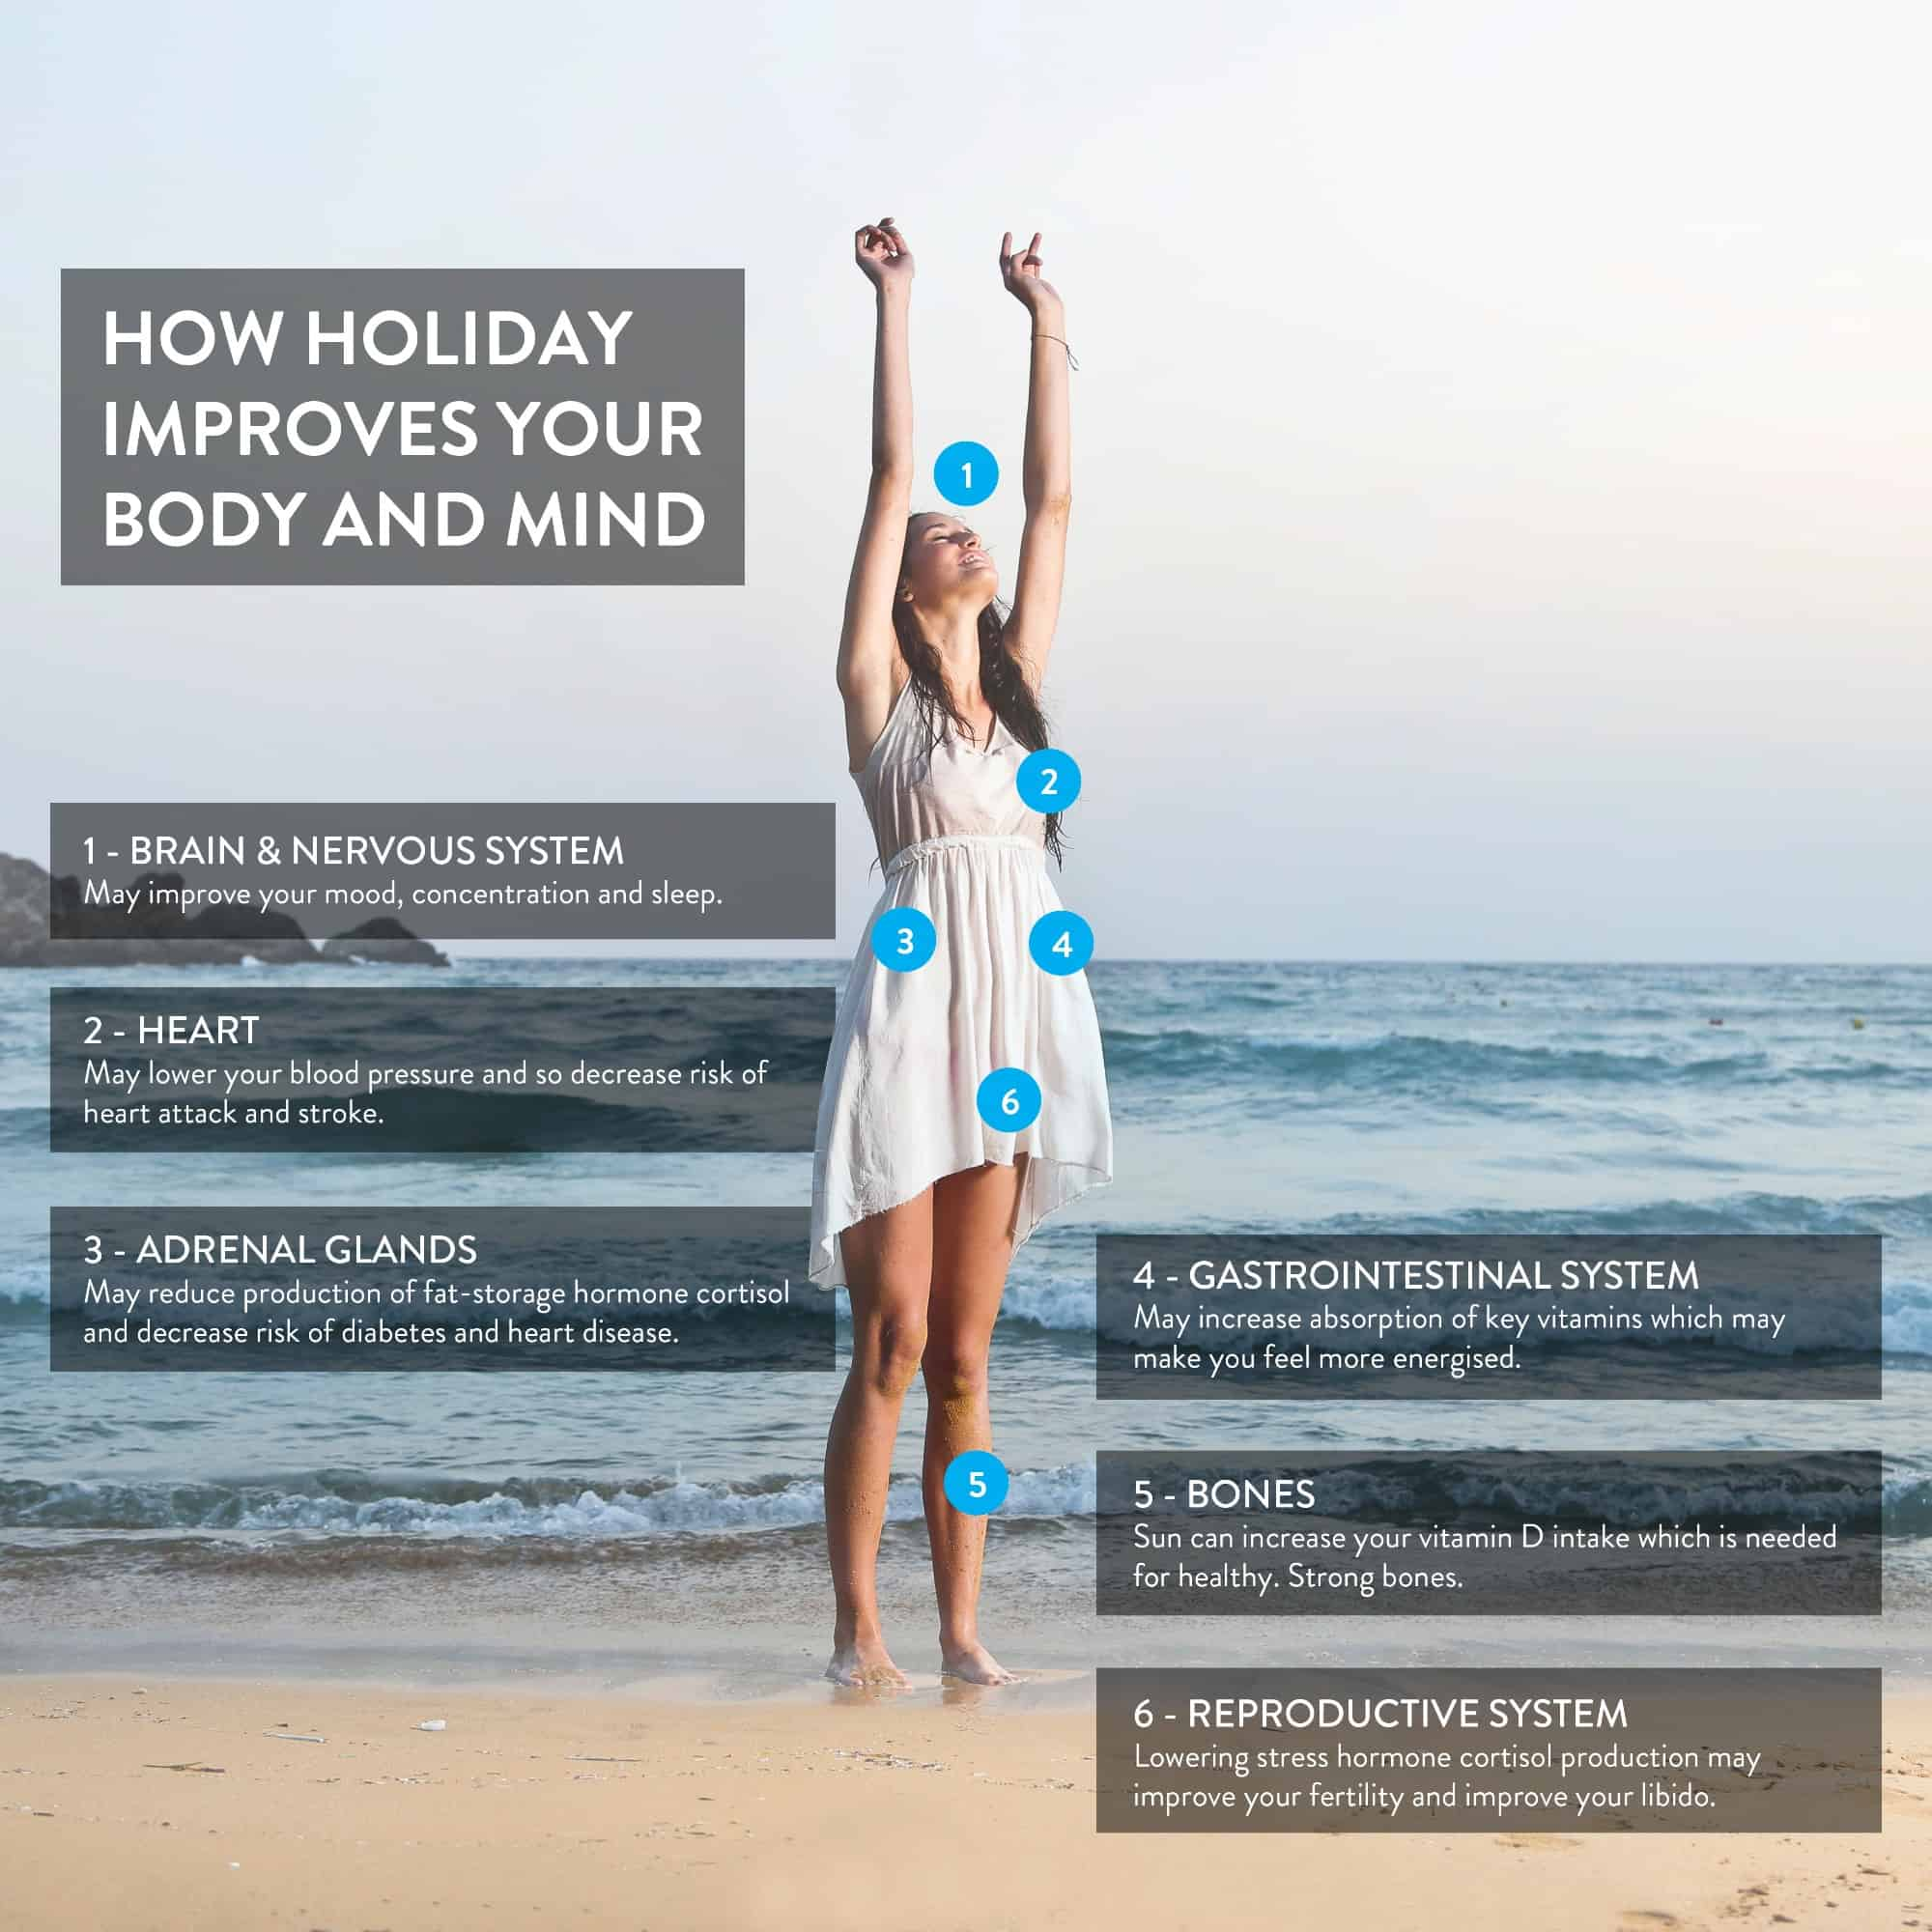 How a Holiday improves your body and mind Image